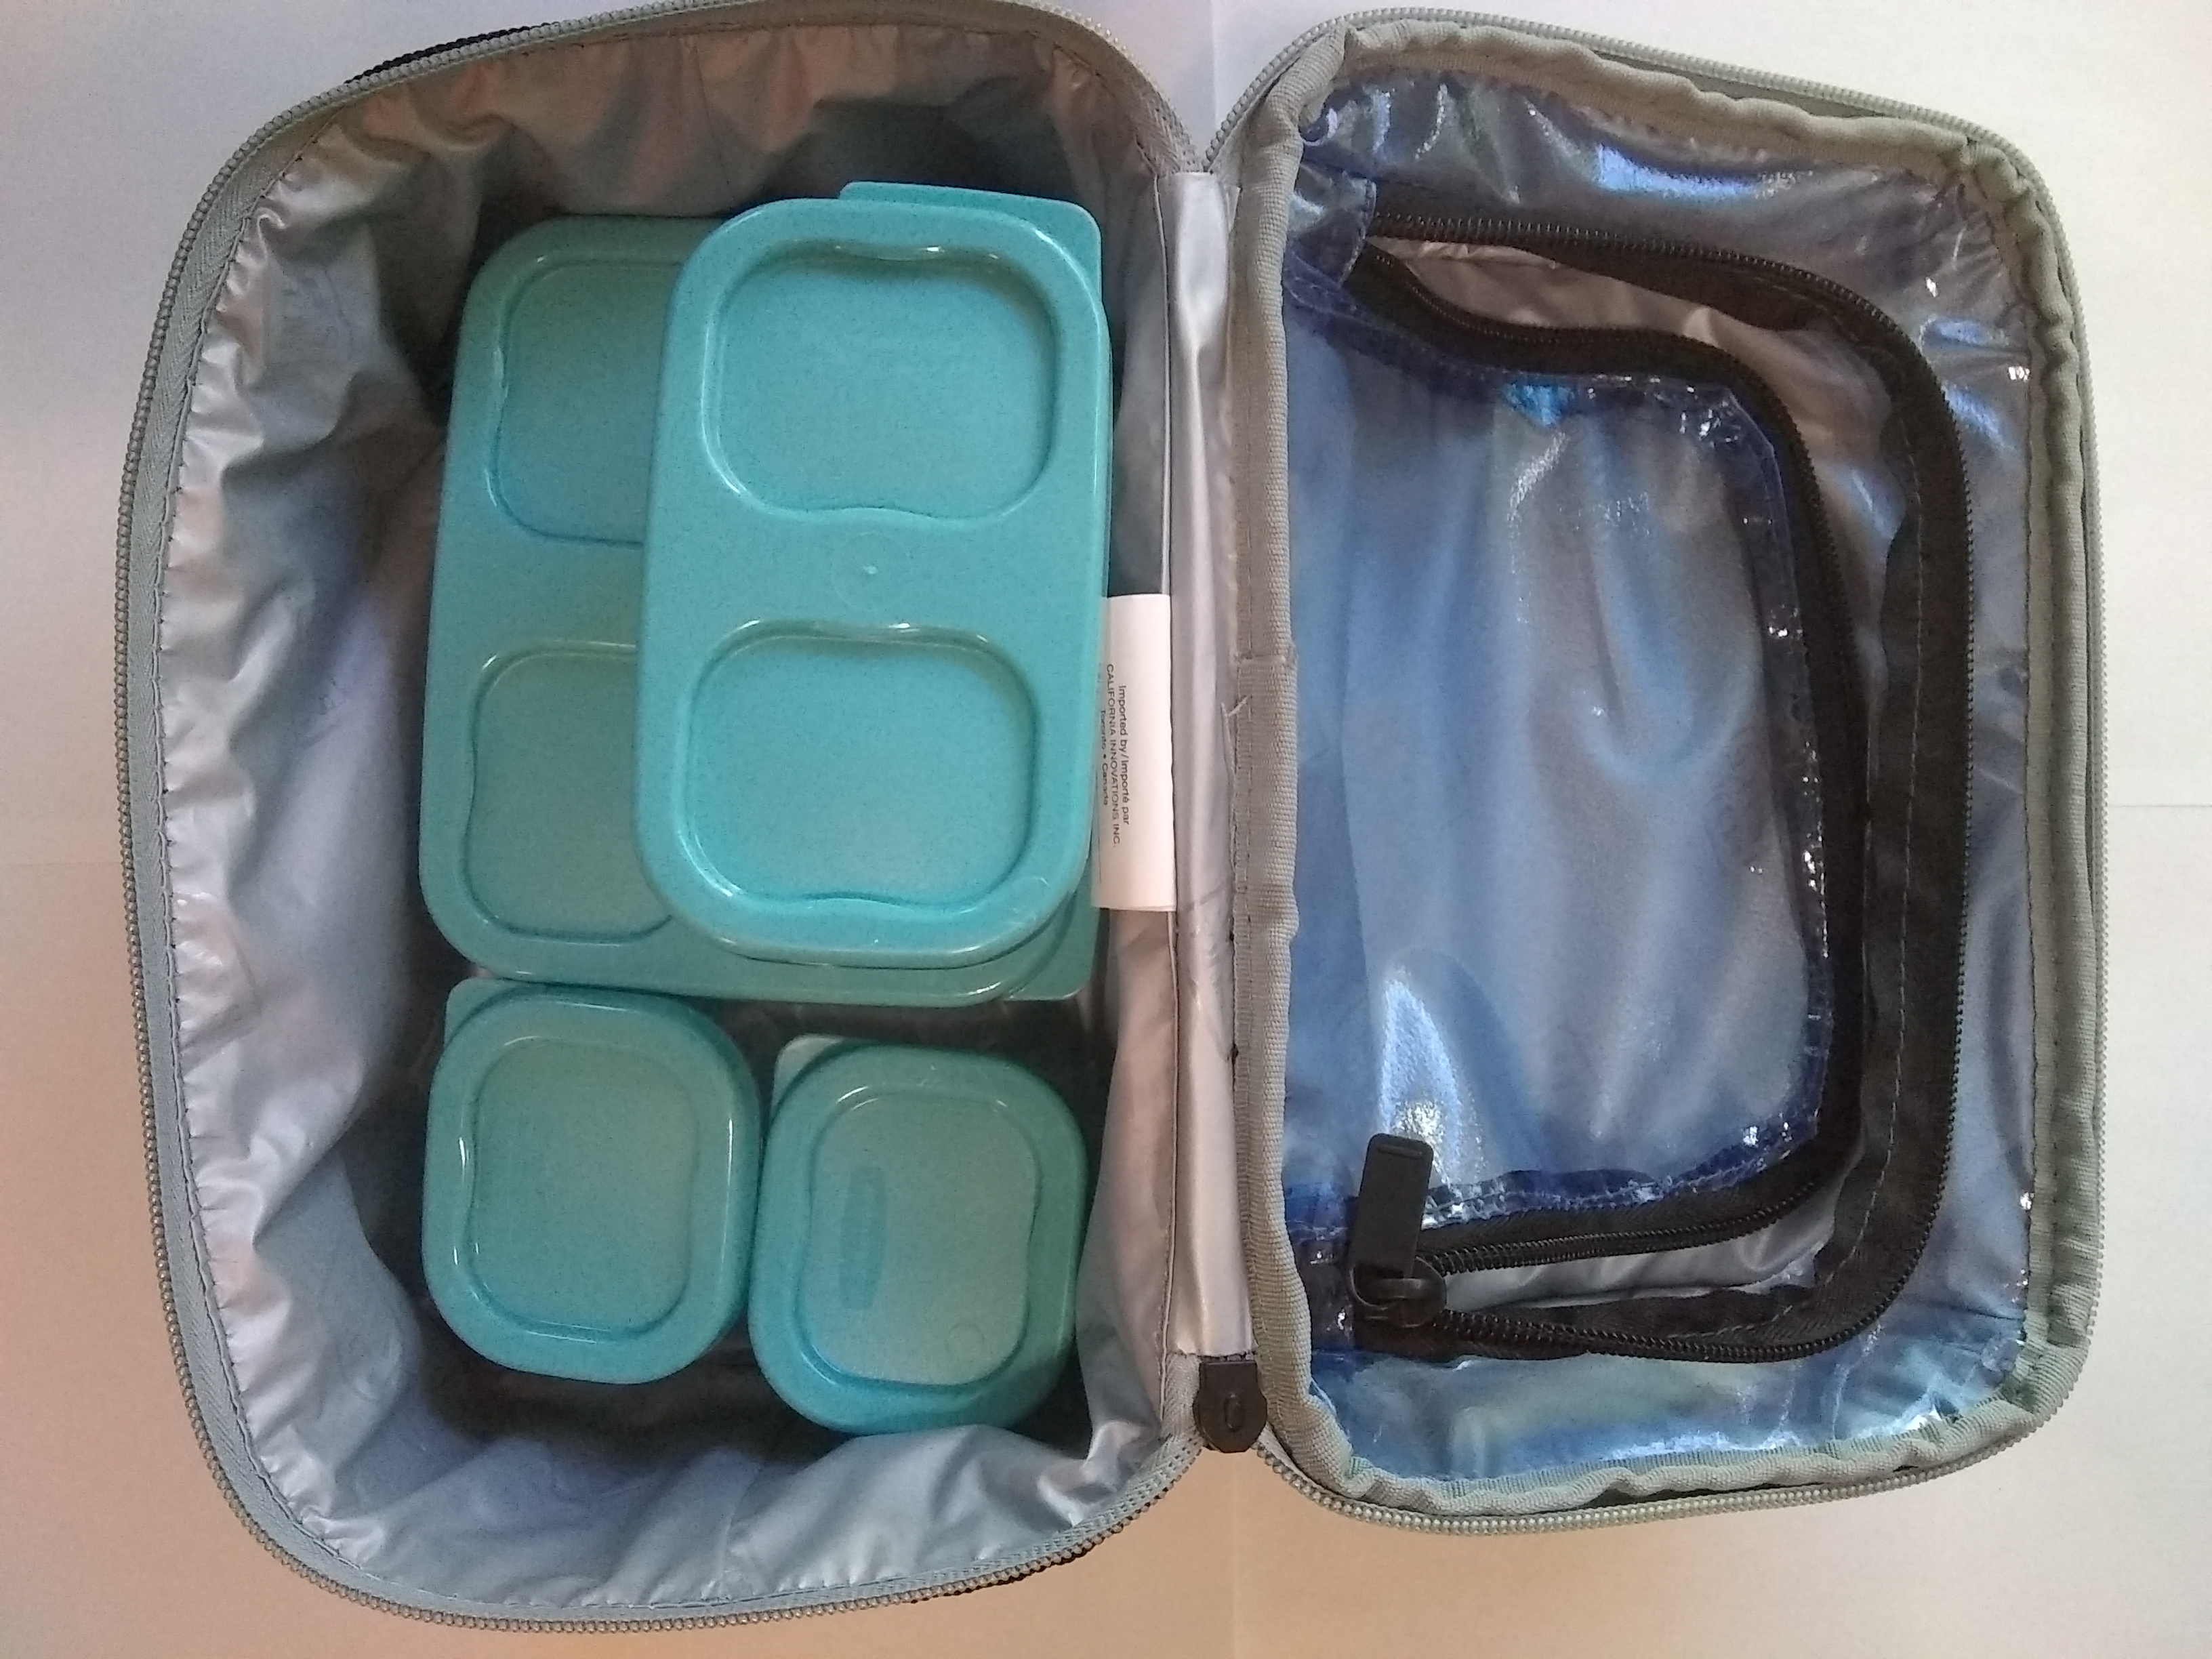 LUNCH CONTAINERS.jpg